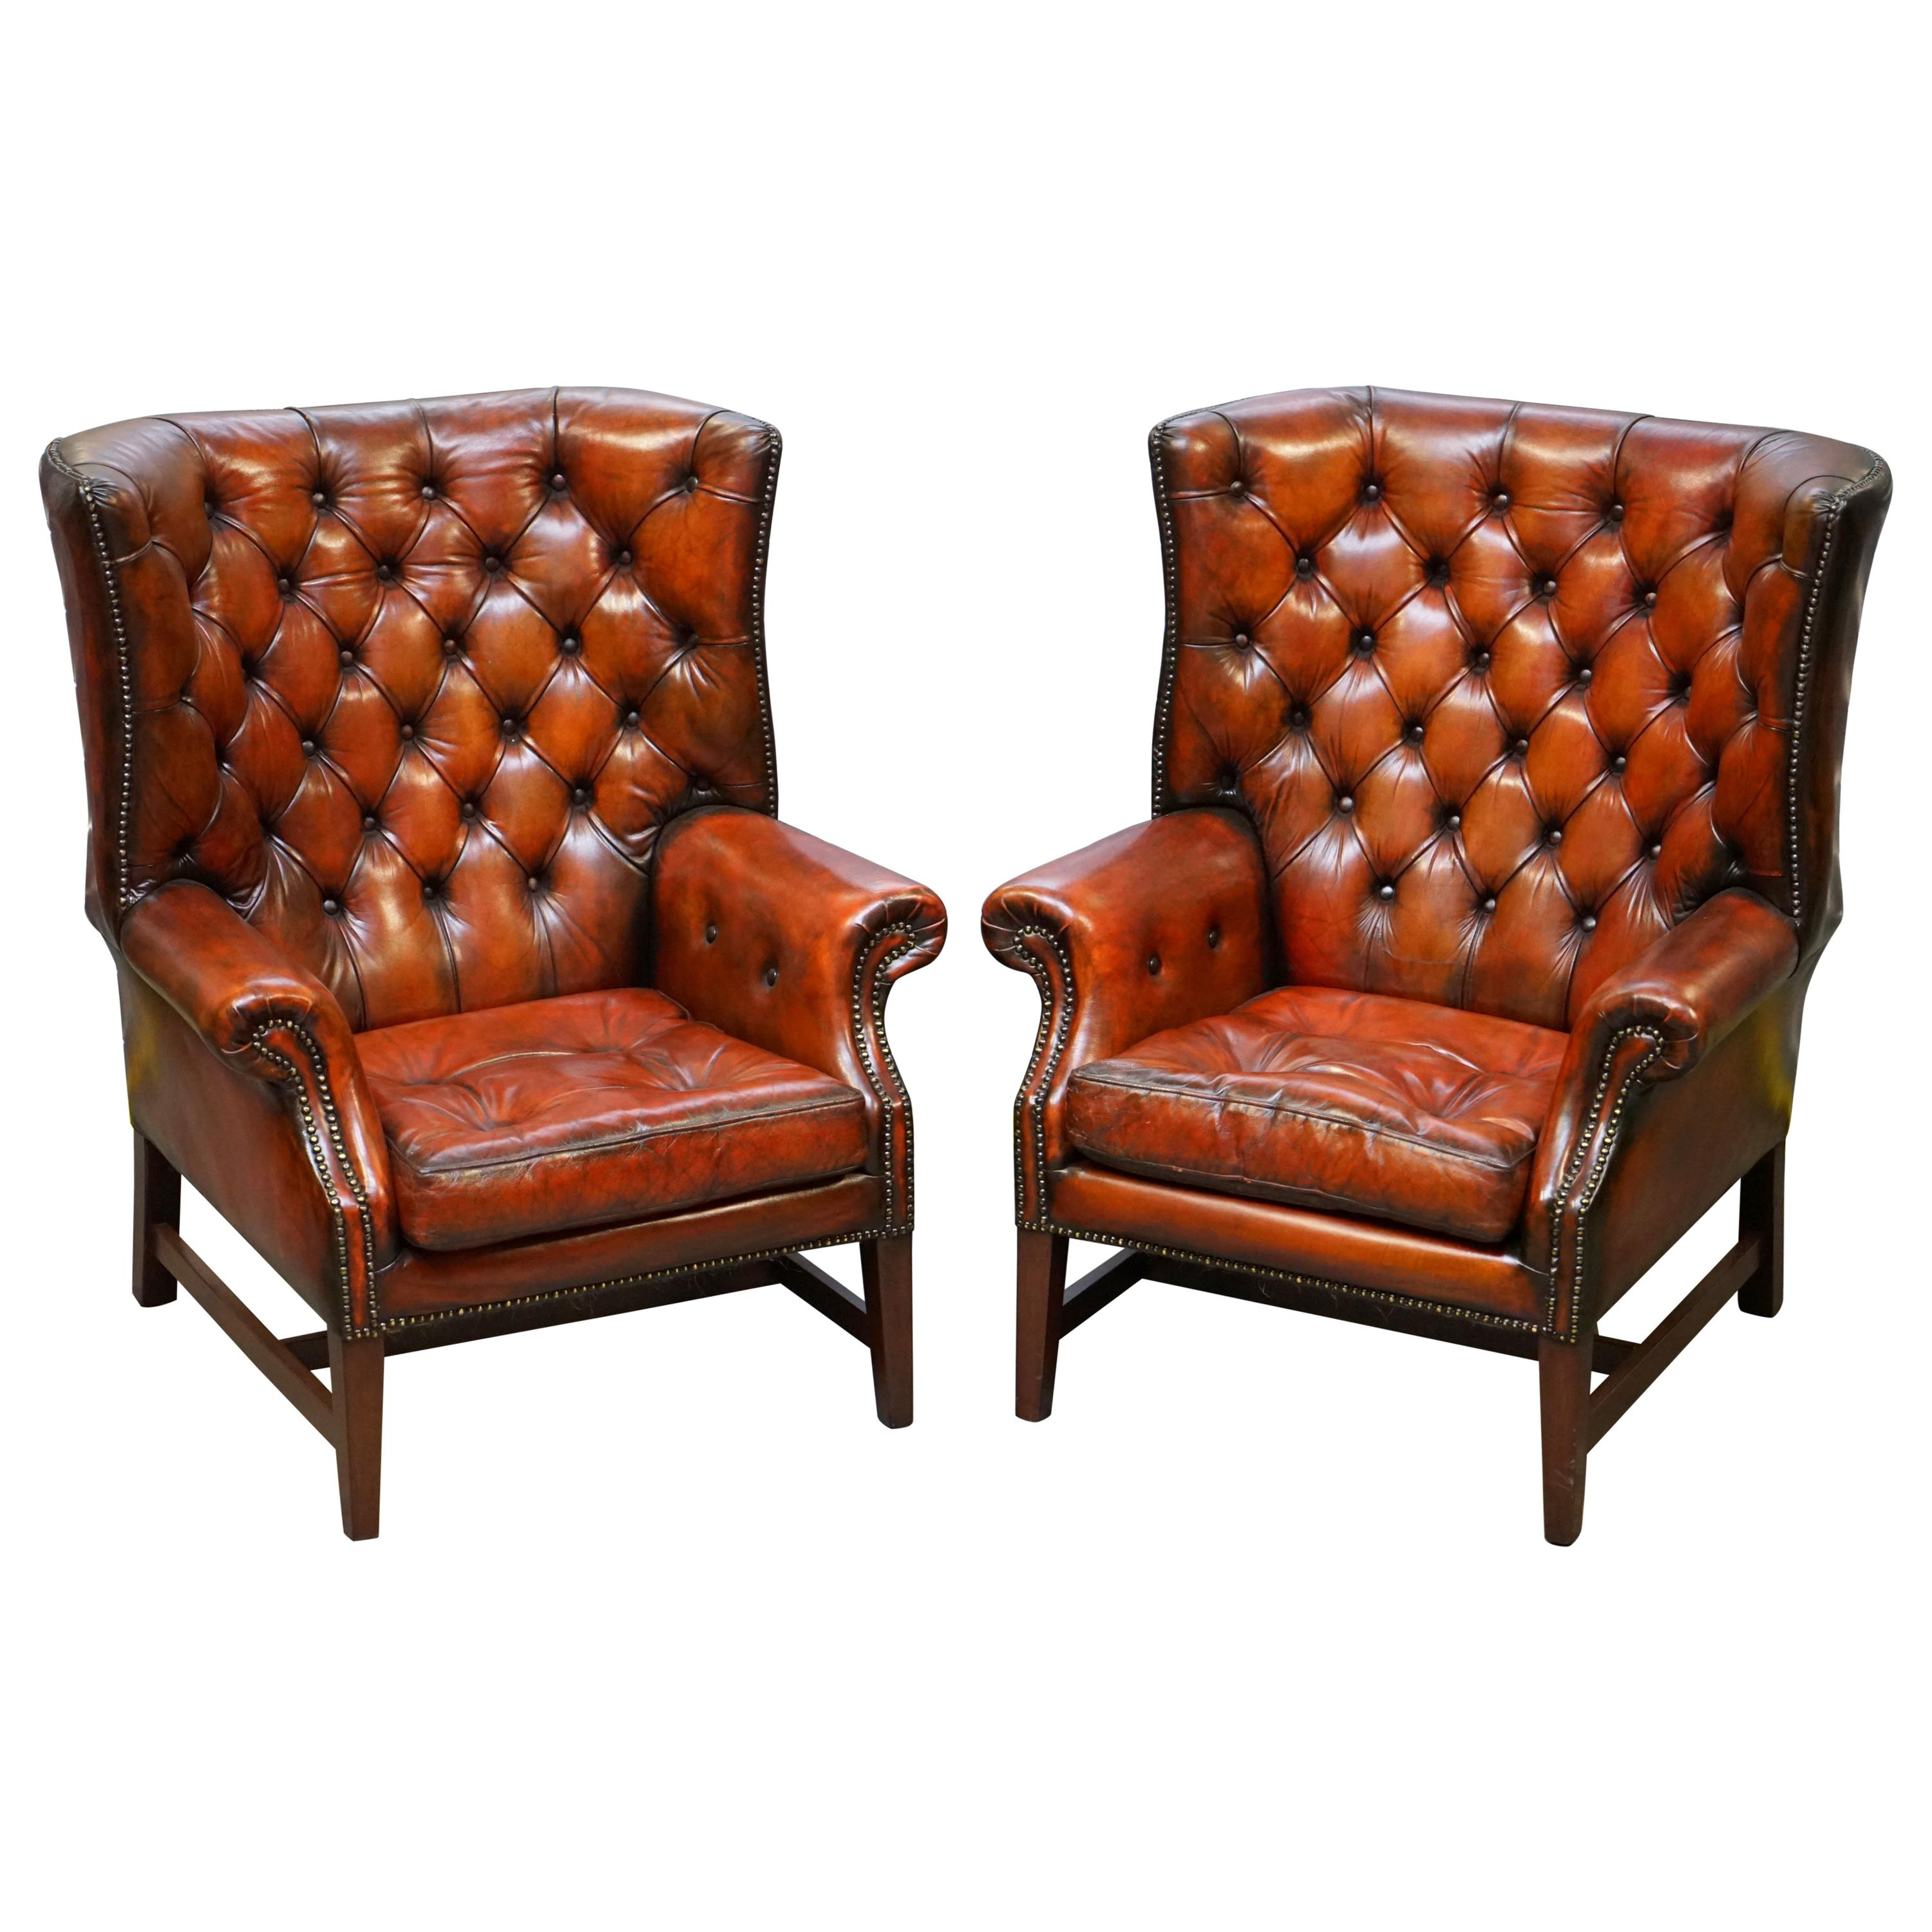 Used Wingback Chairs Antique And Vintage Wingback Chairs 873 For Sale At 1stdibs